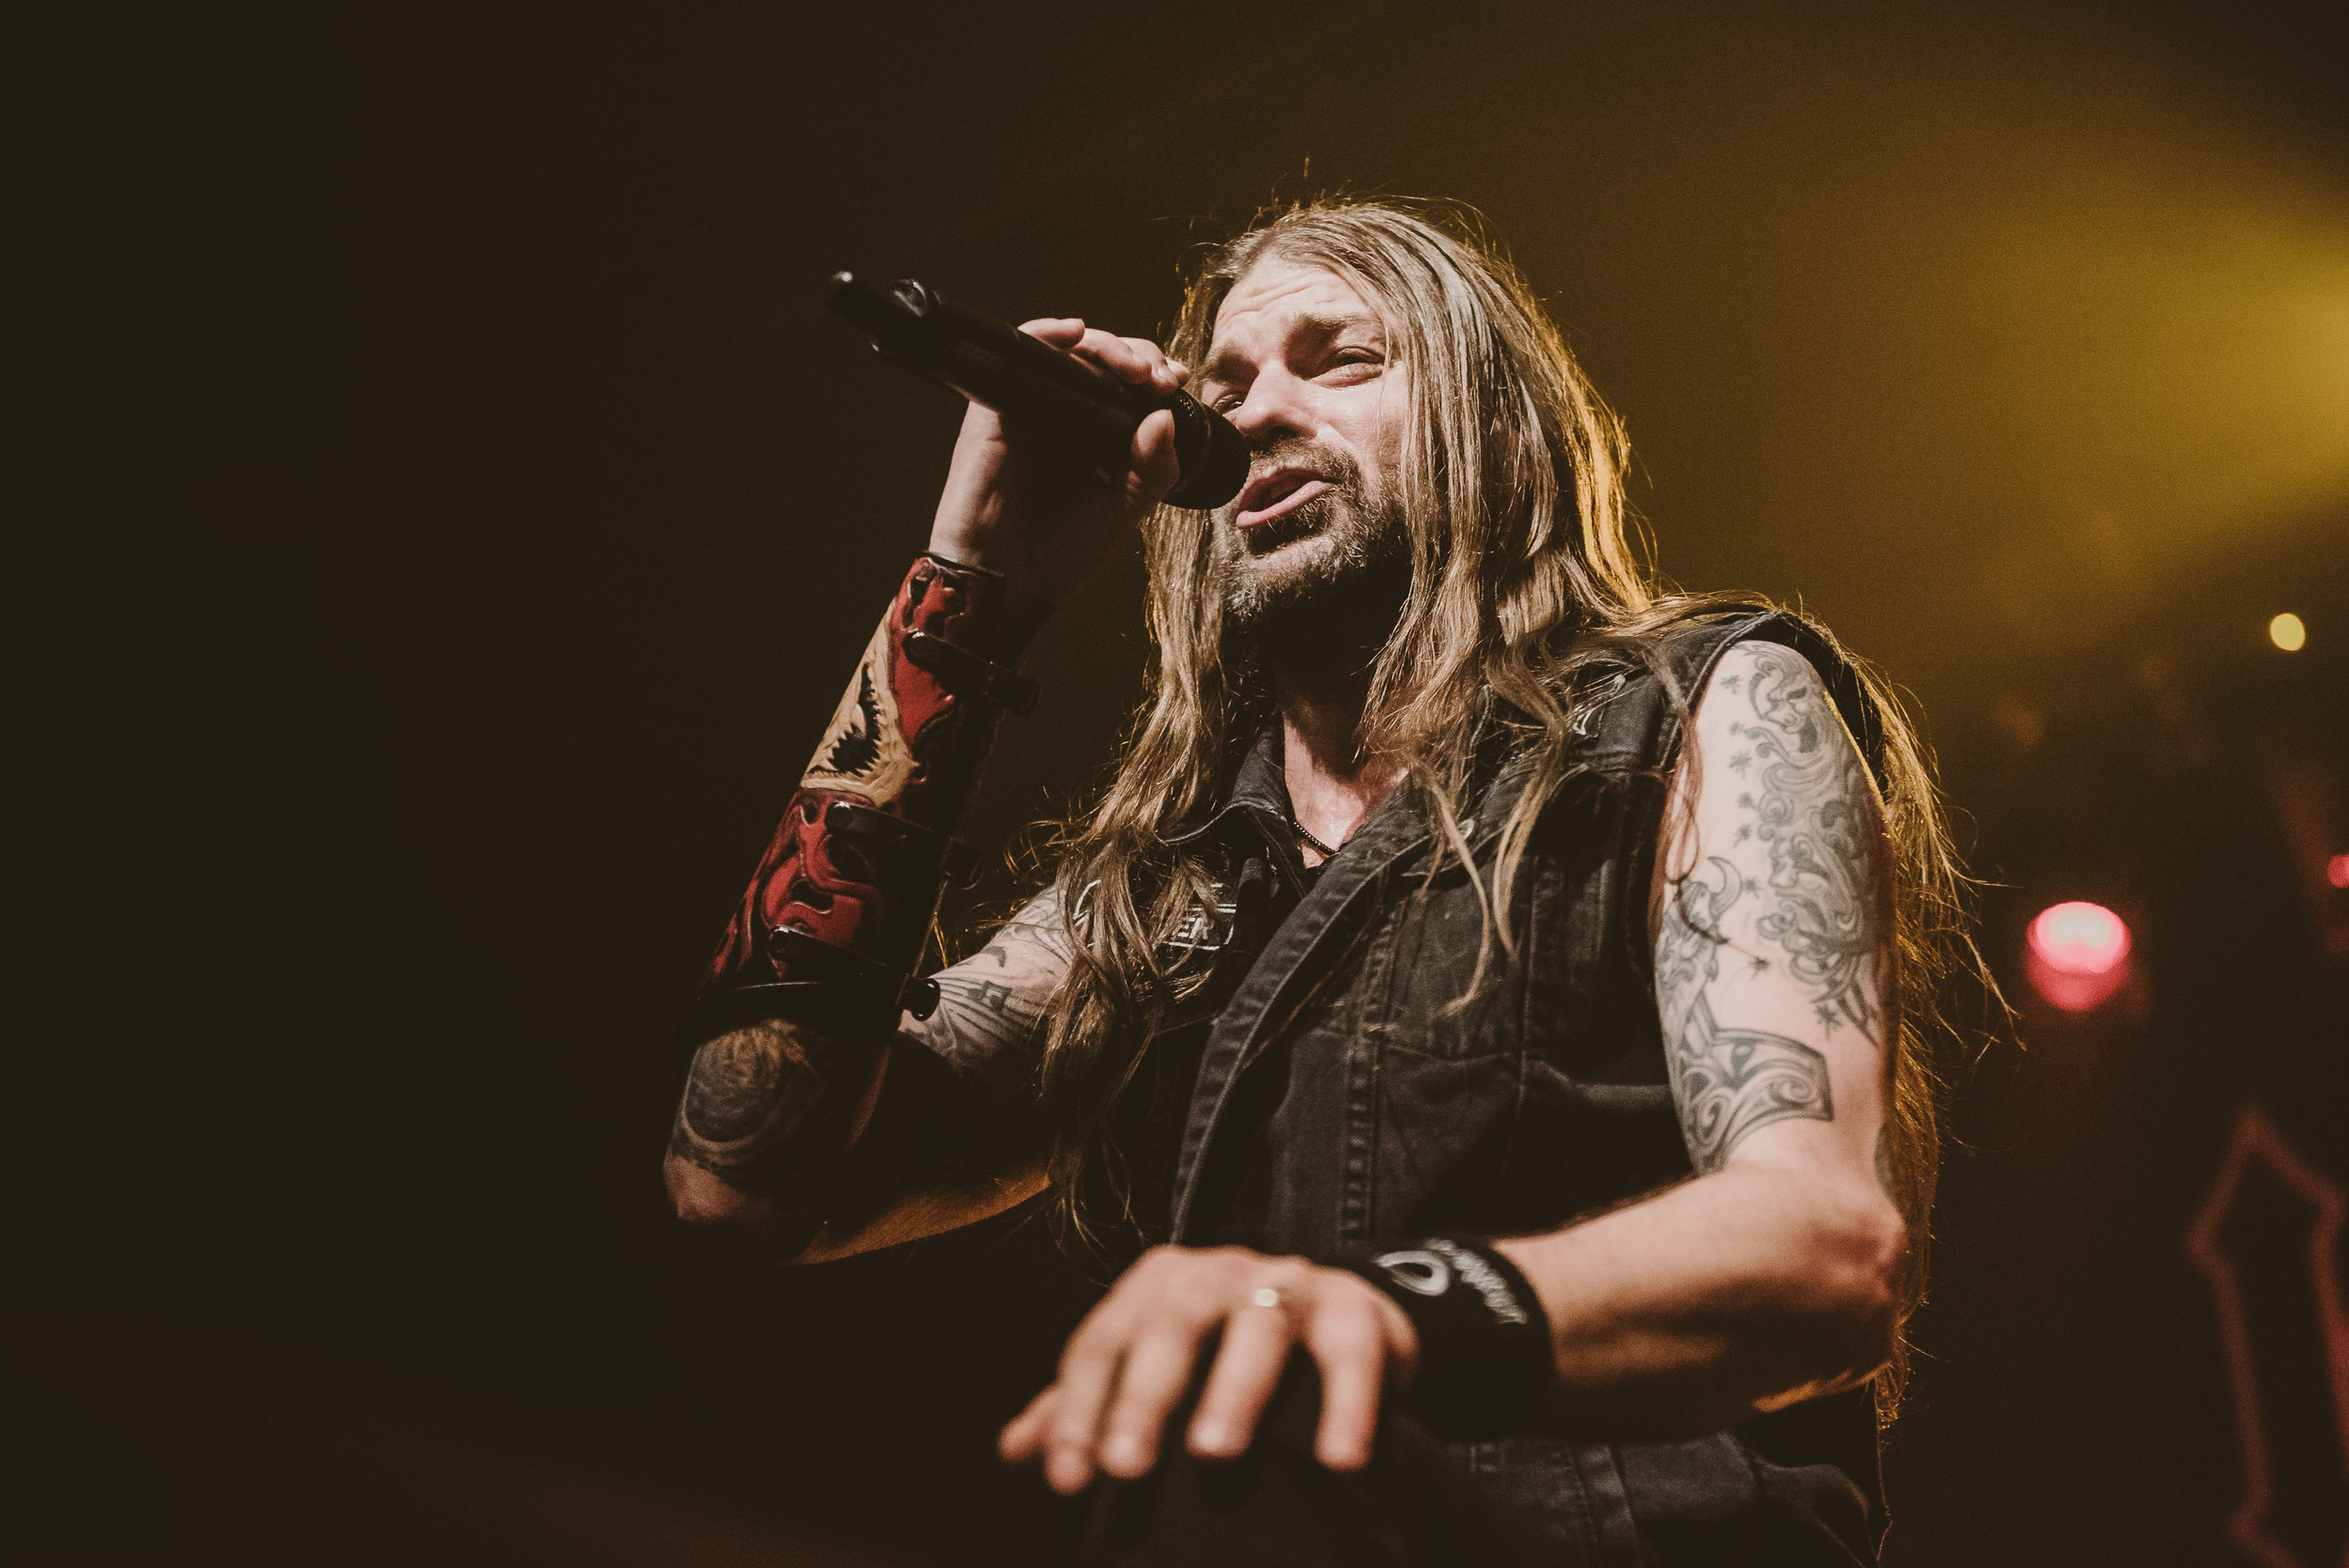 1_Iced_Earth-Rickshaw_Theatre-Timothy_Nguyen-20180304 (14 of 20).jpg